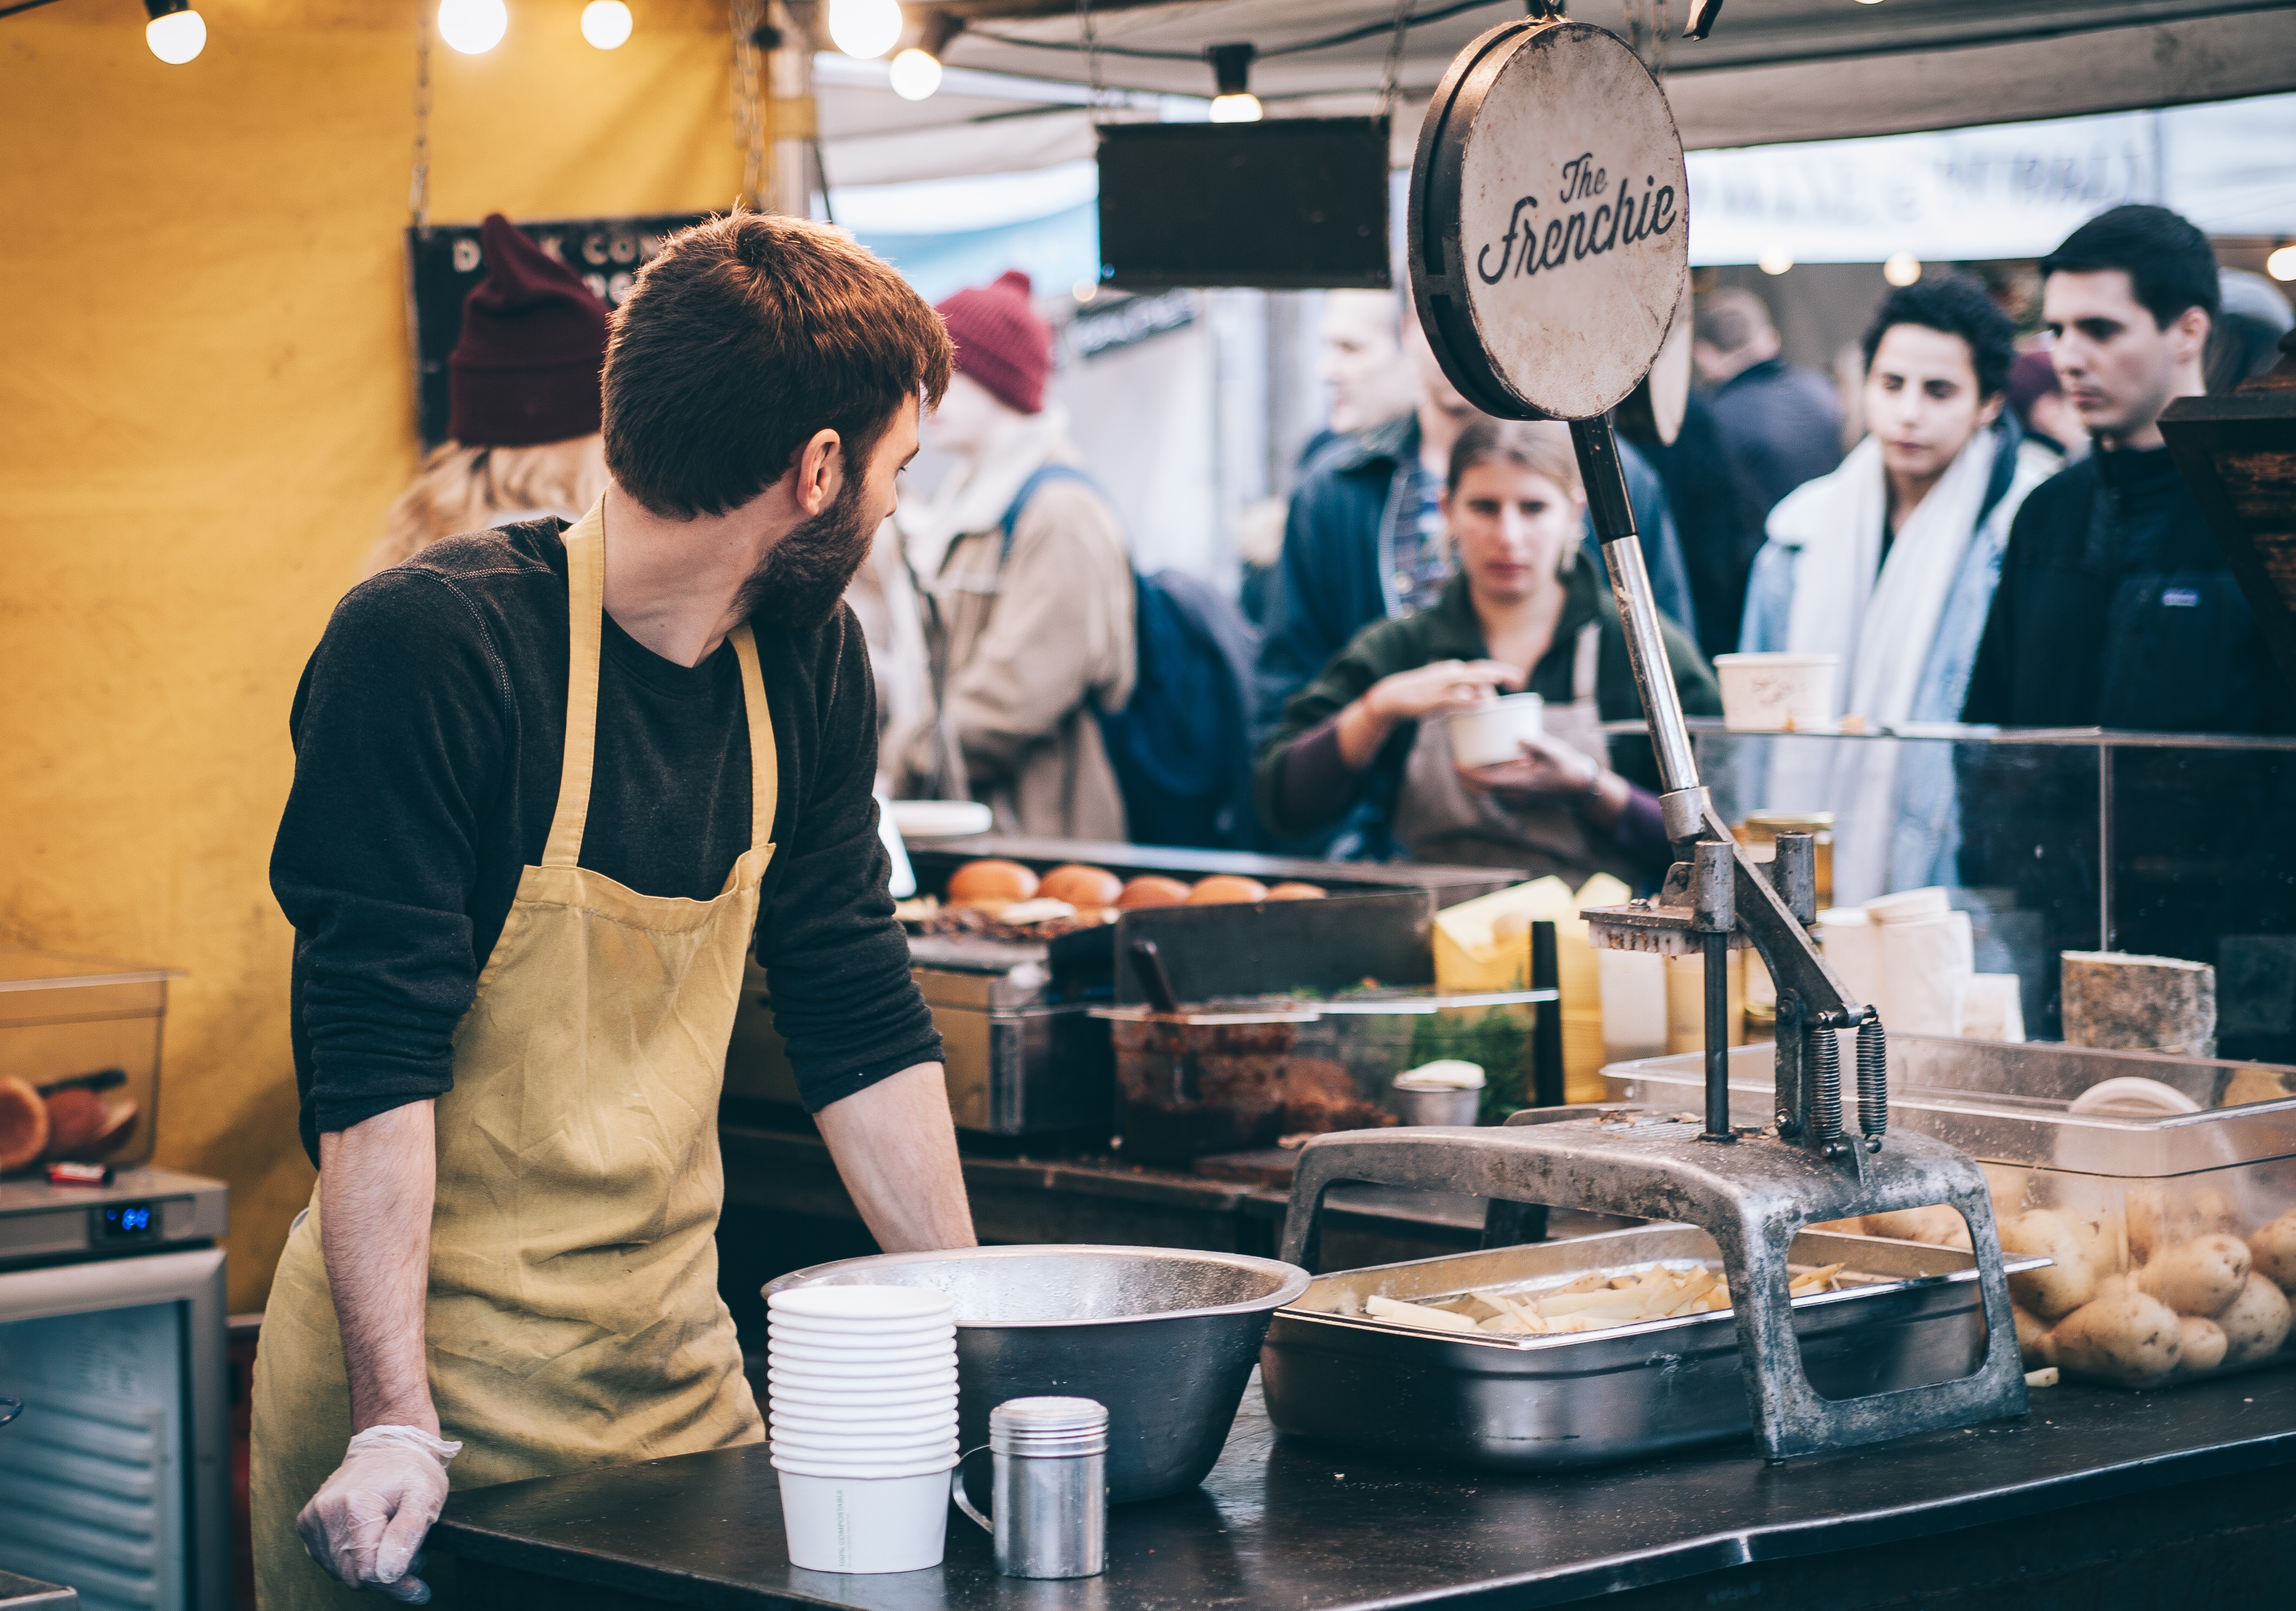 employee wearing an apron looks over his shoulder at a line of customers